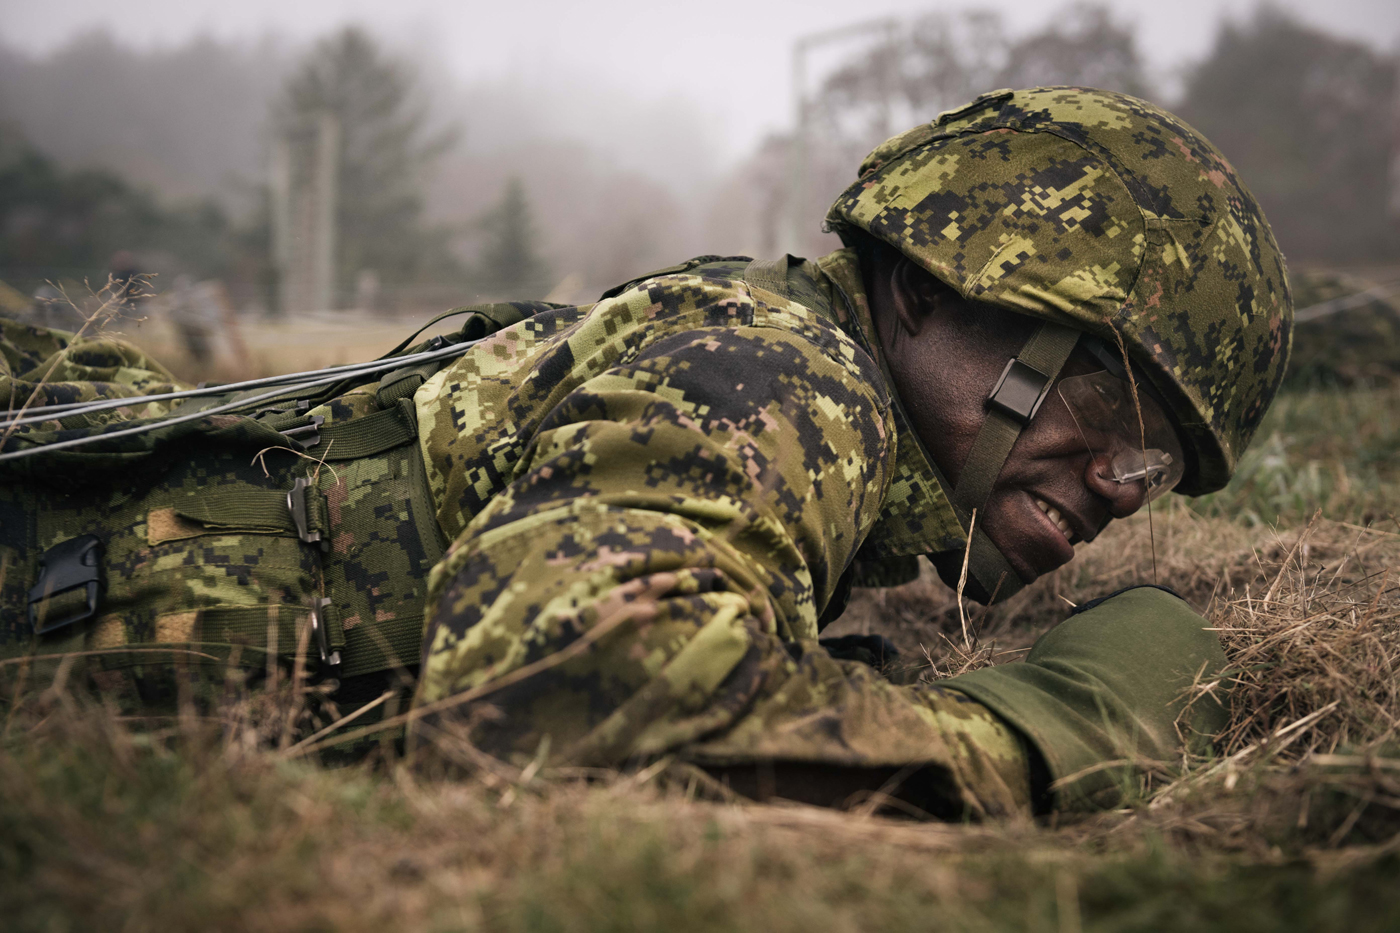 Sailor Third Class Recruit Kofi Asumadu completes the low wire combat crawl obstacle during the Confidence Course as part of BMQ training on Oct. 5. Photo by S1 Victoria Ioganov, MARPAC Imaging Services